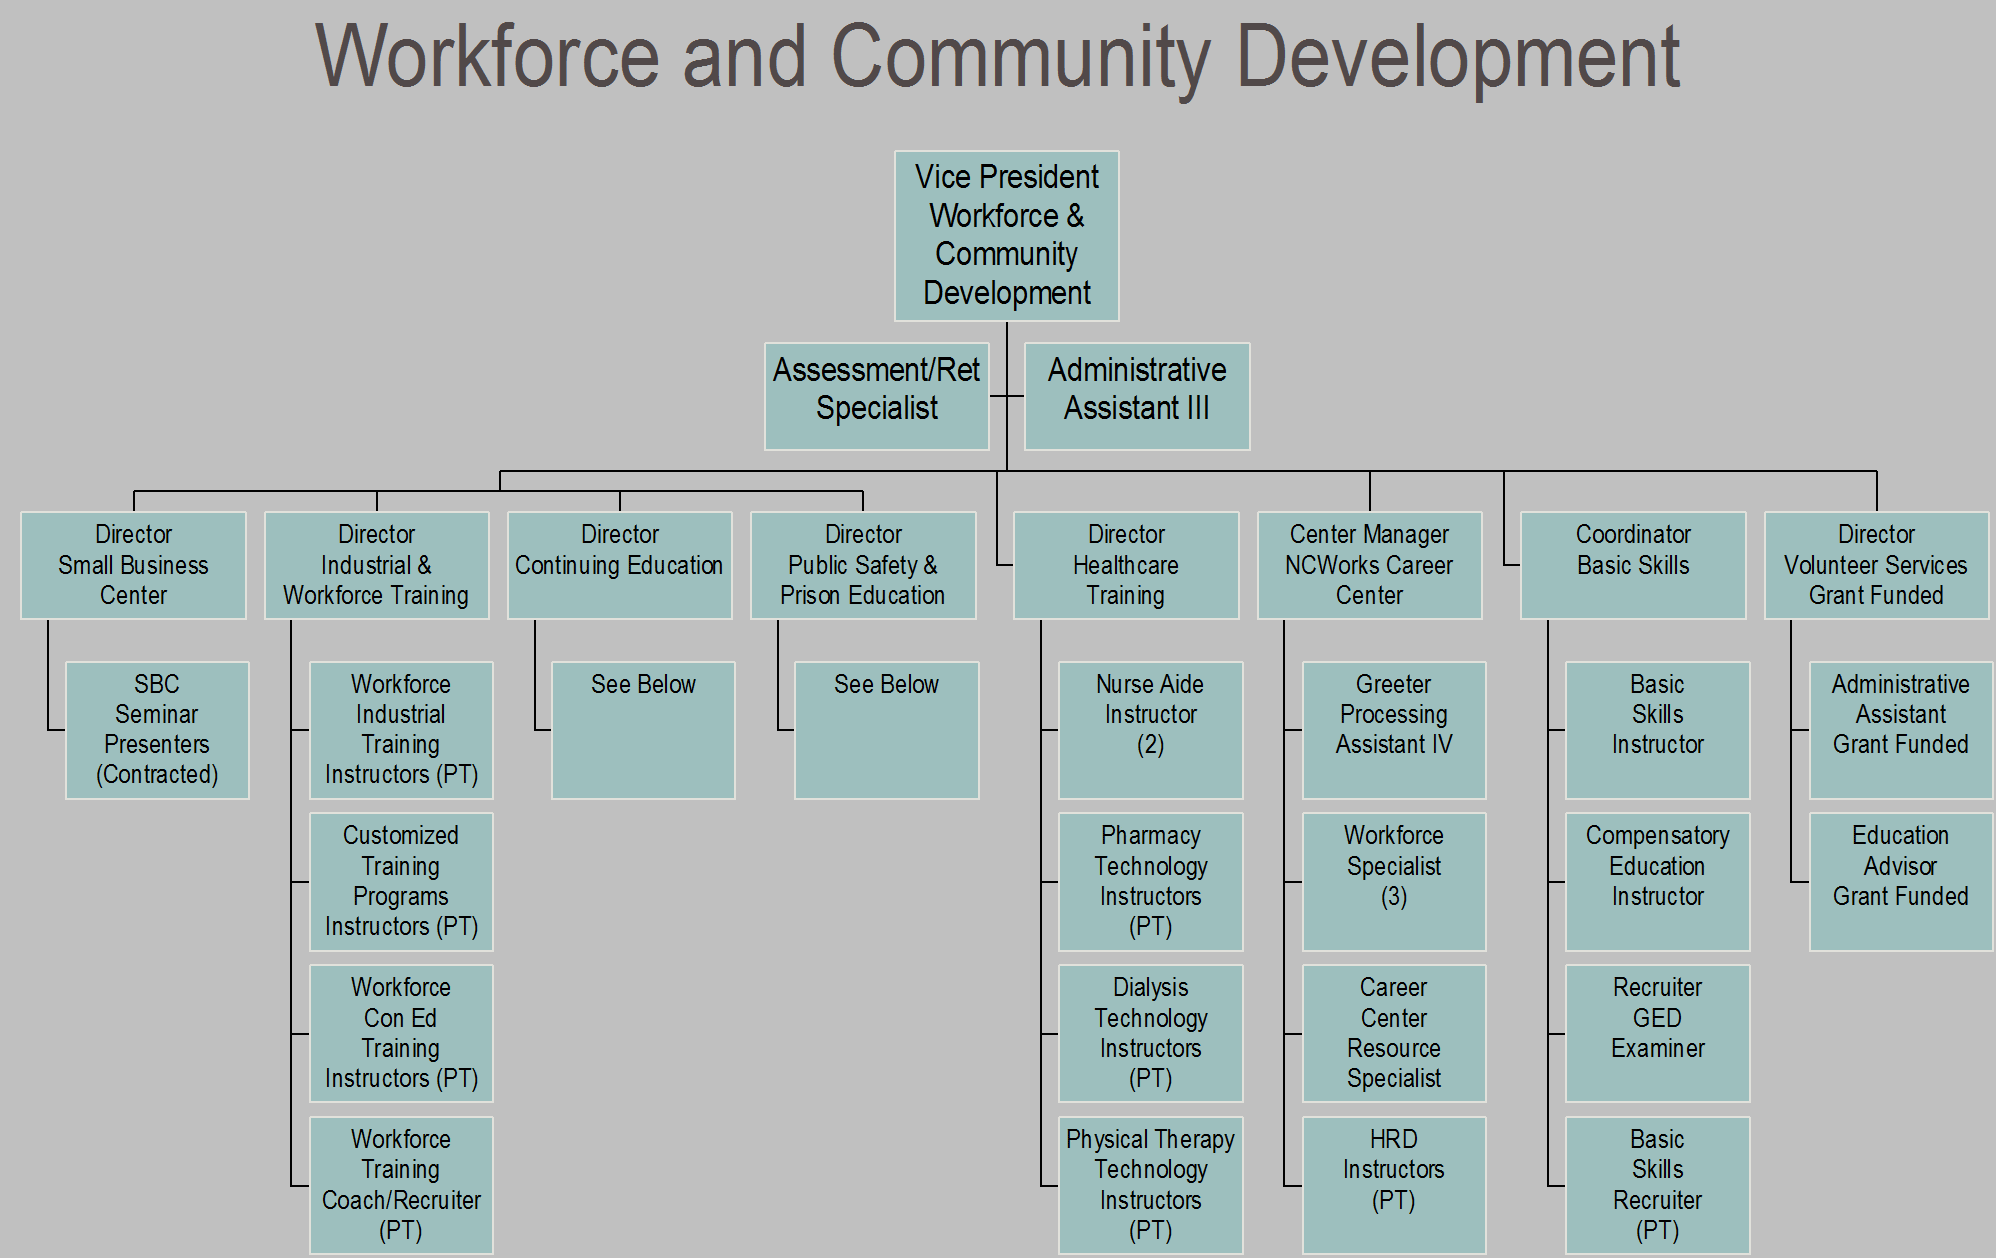 Workforce and Community Development